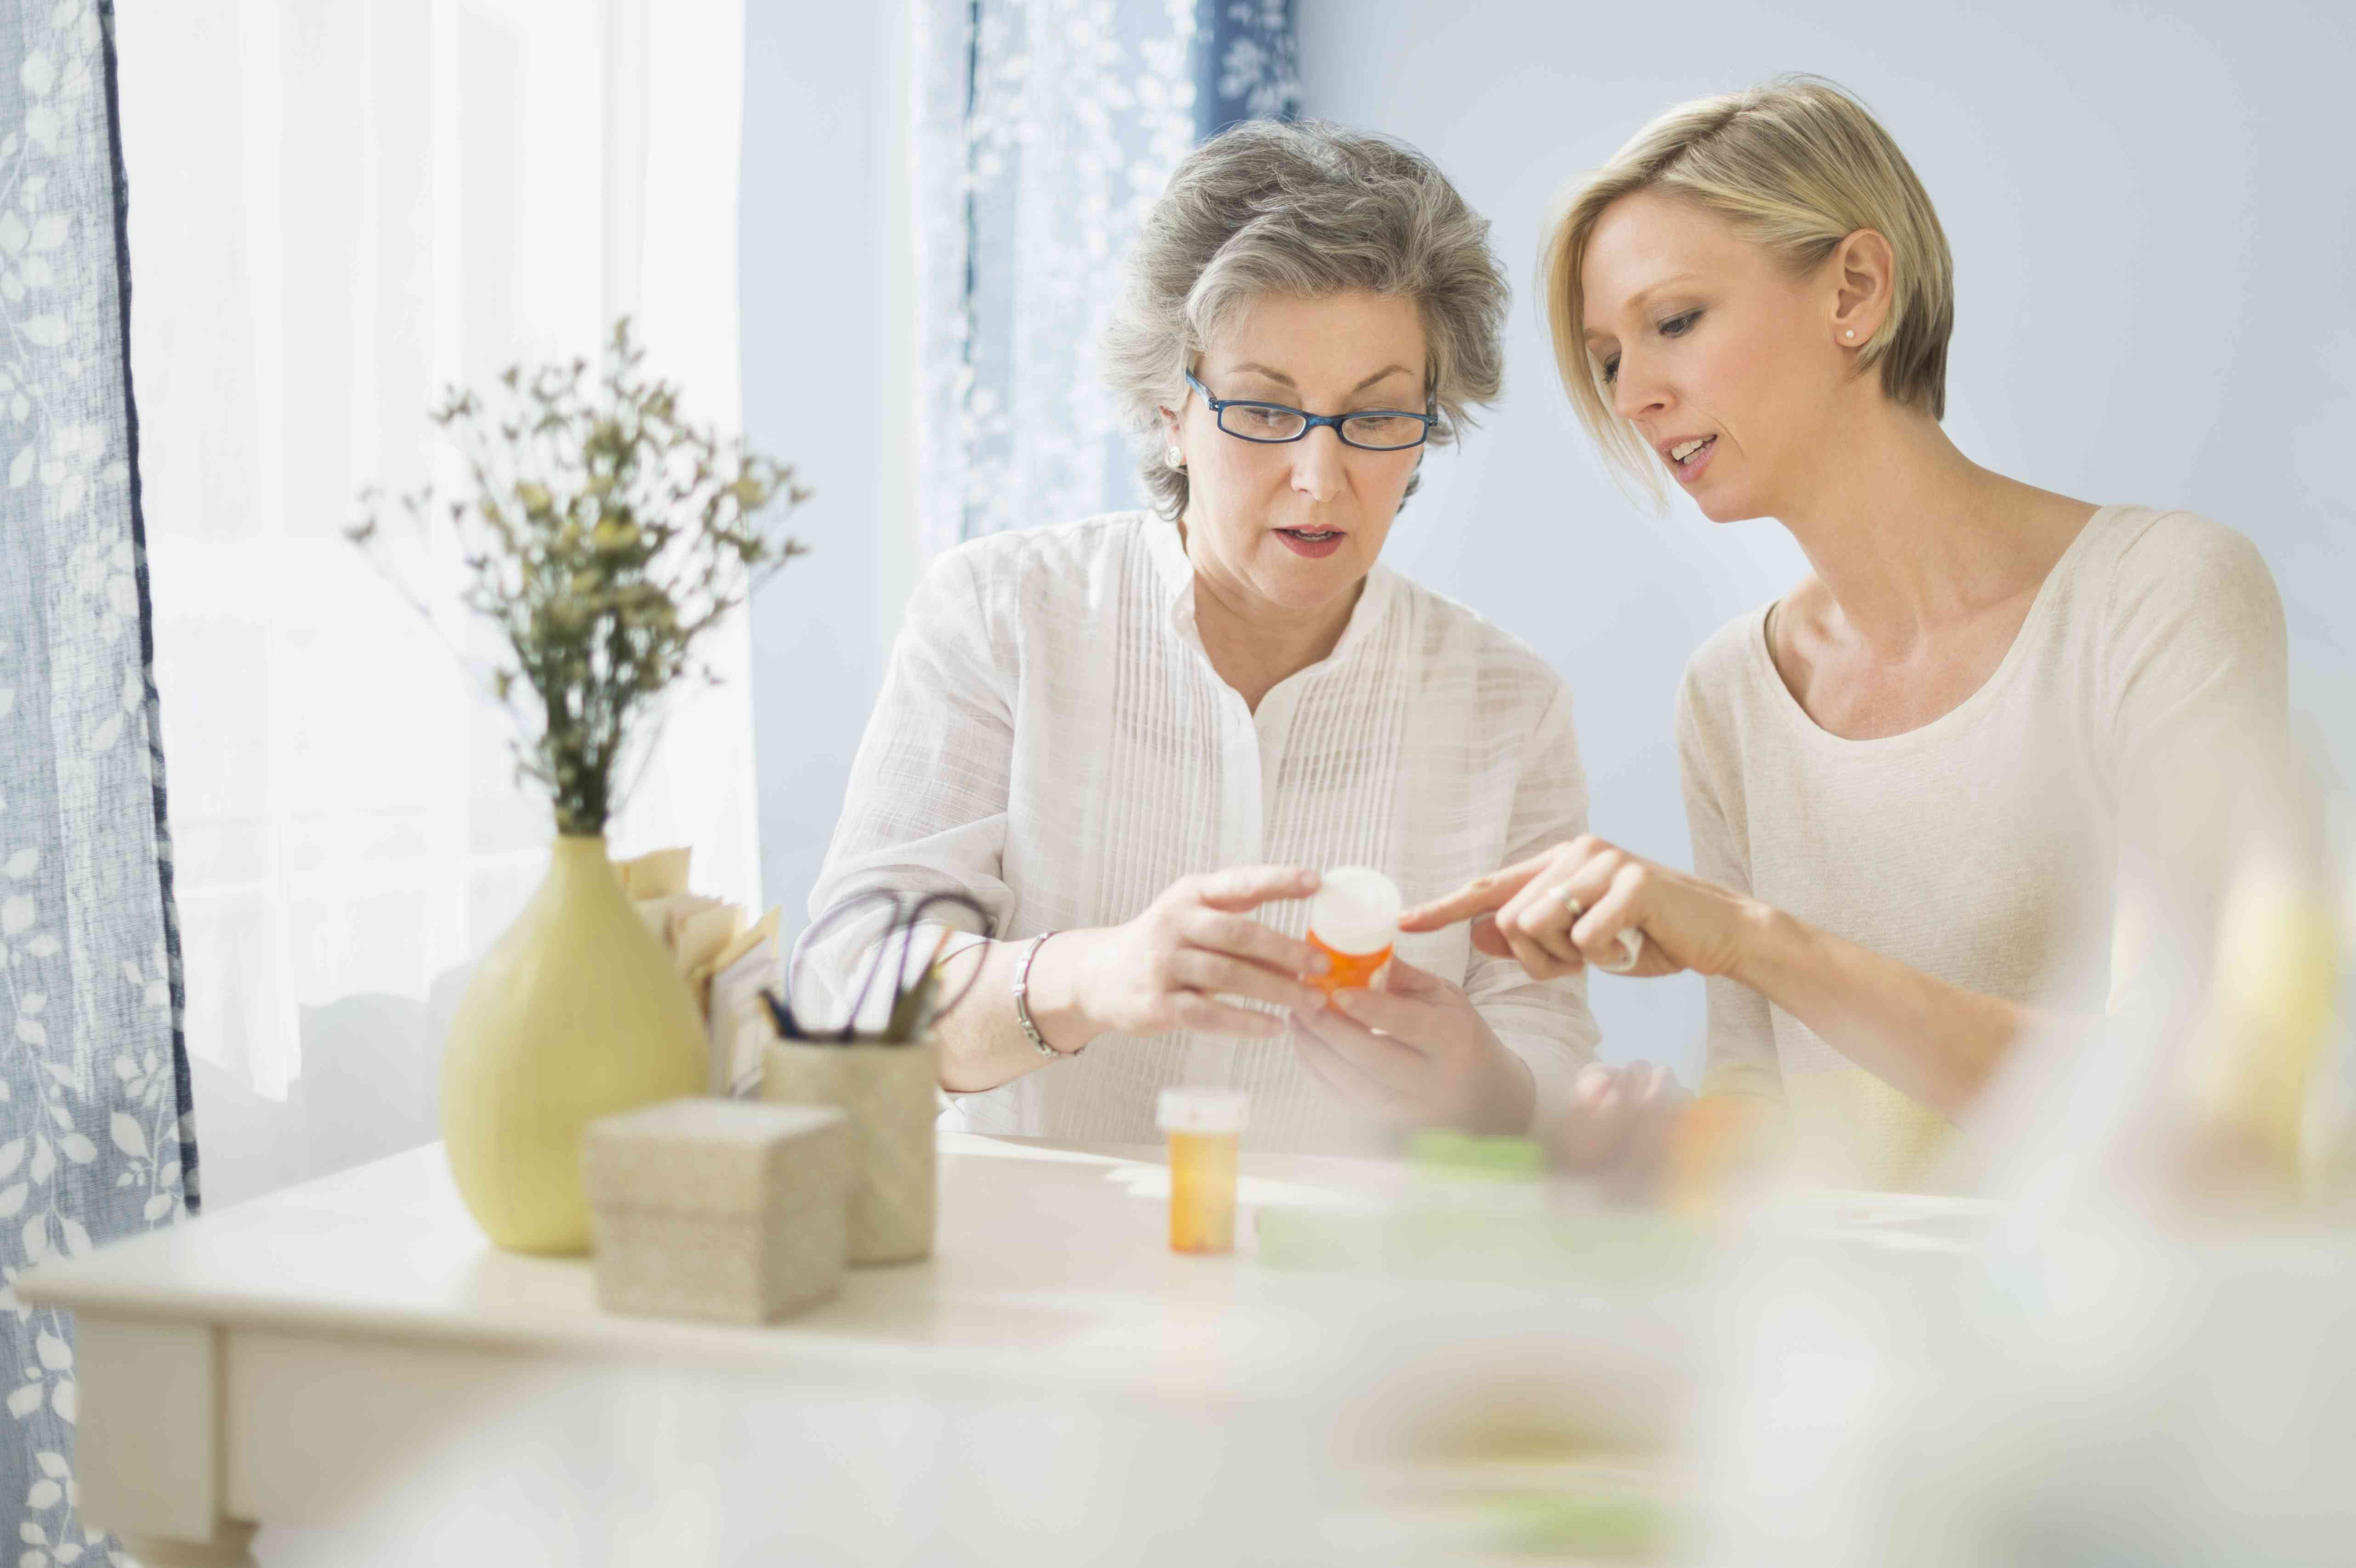 Nurse and mature woman reading labels on medicine bottle, Jersey City, New Jersey, USA